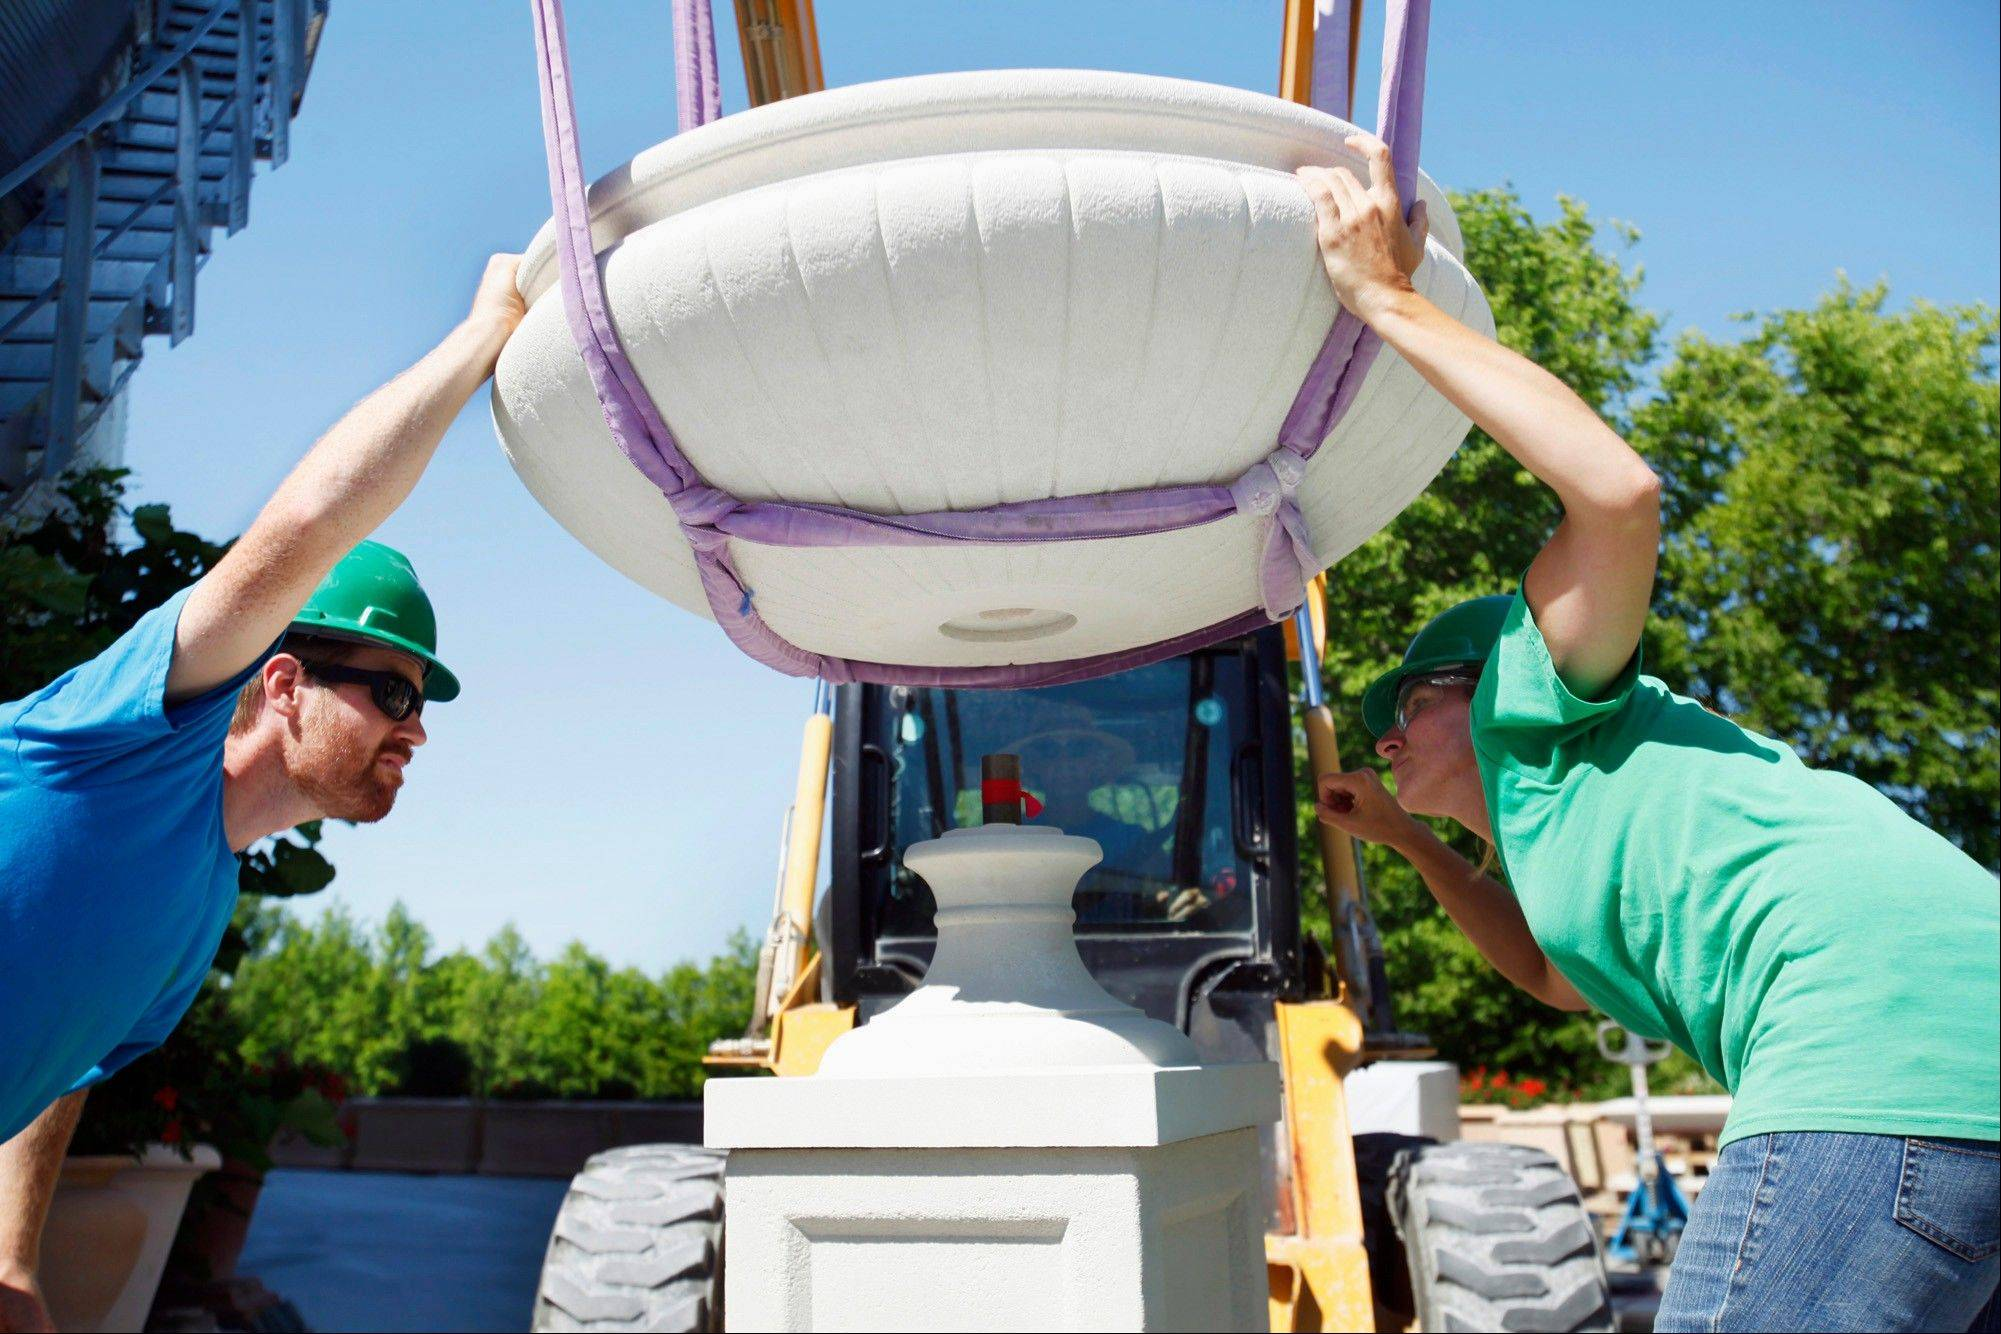 Andrew Abbott, left, and Shari Smiley carefully position a planter over the base as it is lowered into place at Classic Garden Ornaments Ltd., also known as Longshadow in Pomona, Ill.